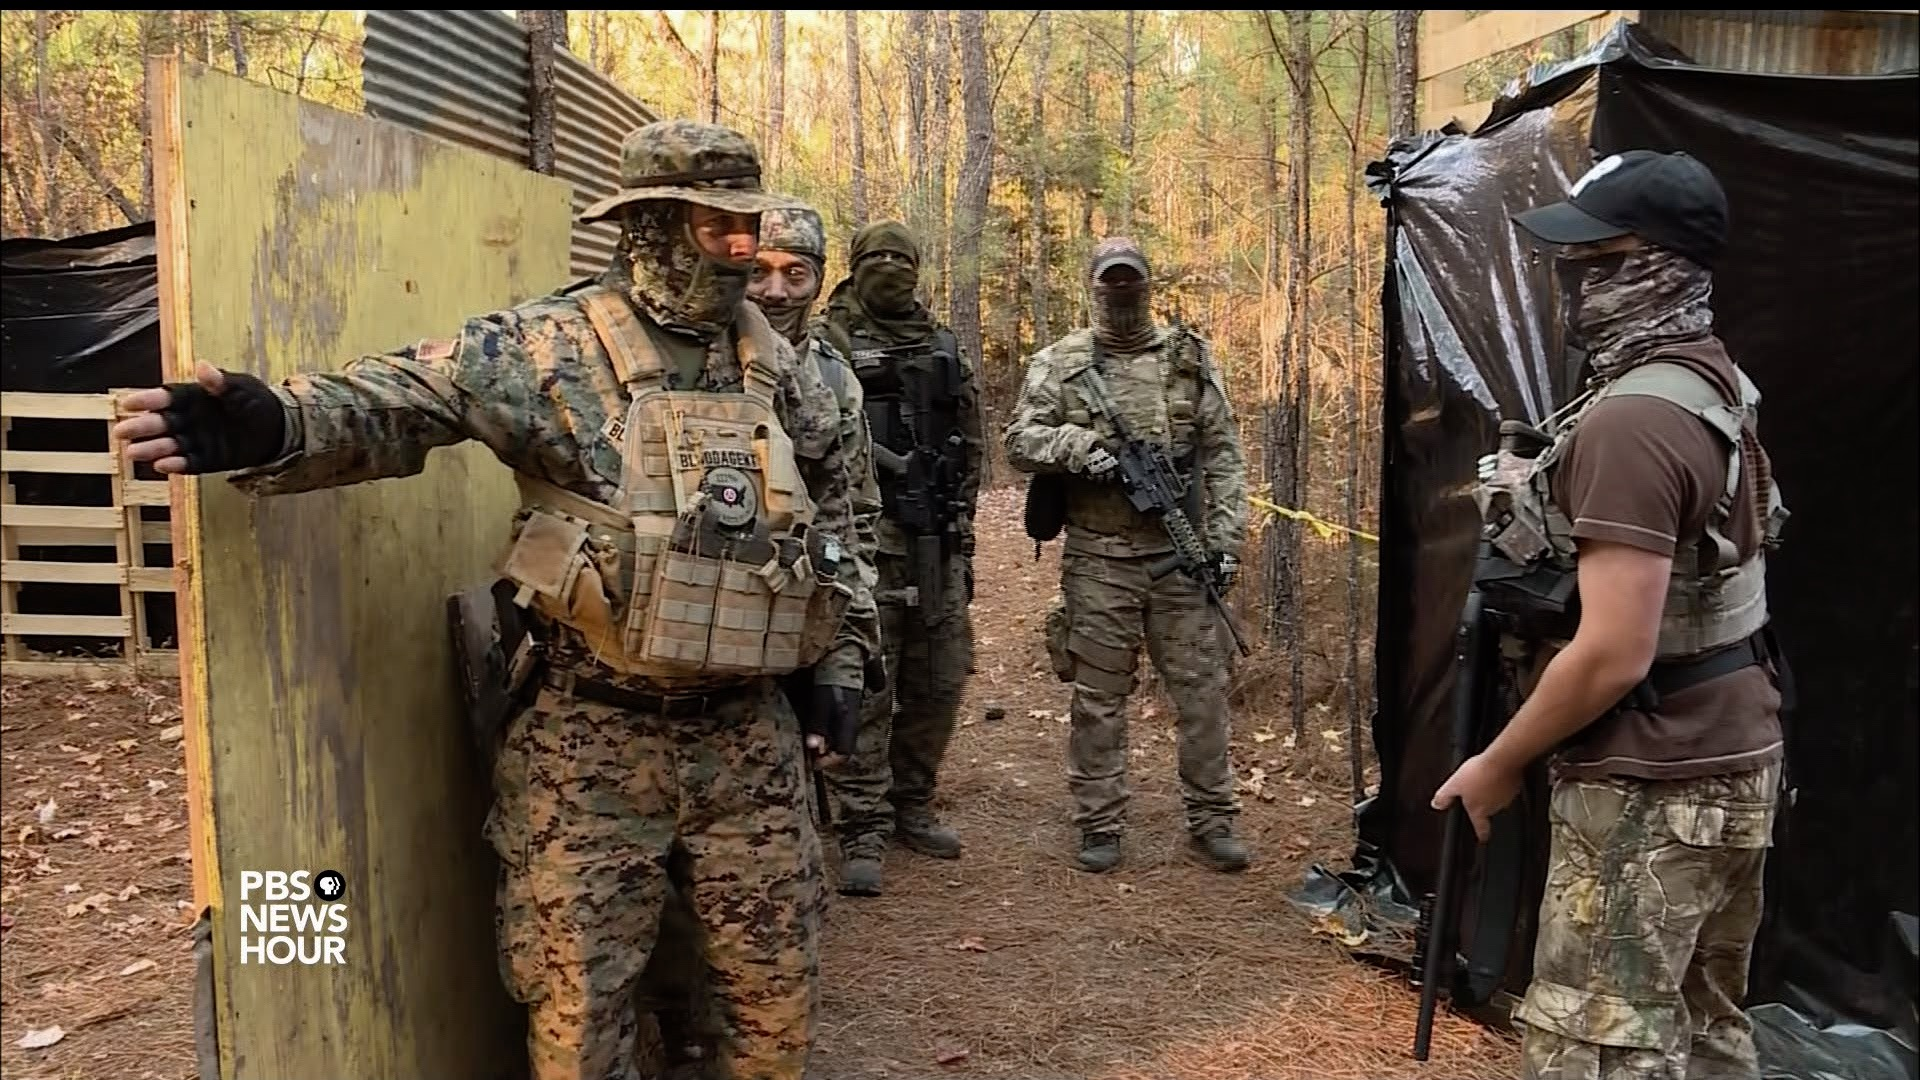 Why armed militia groups are surging across the nation | PBS NewsHour